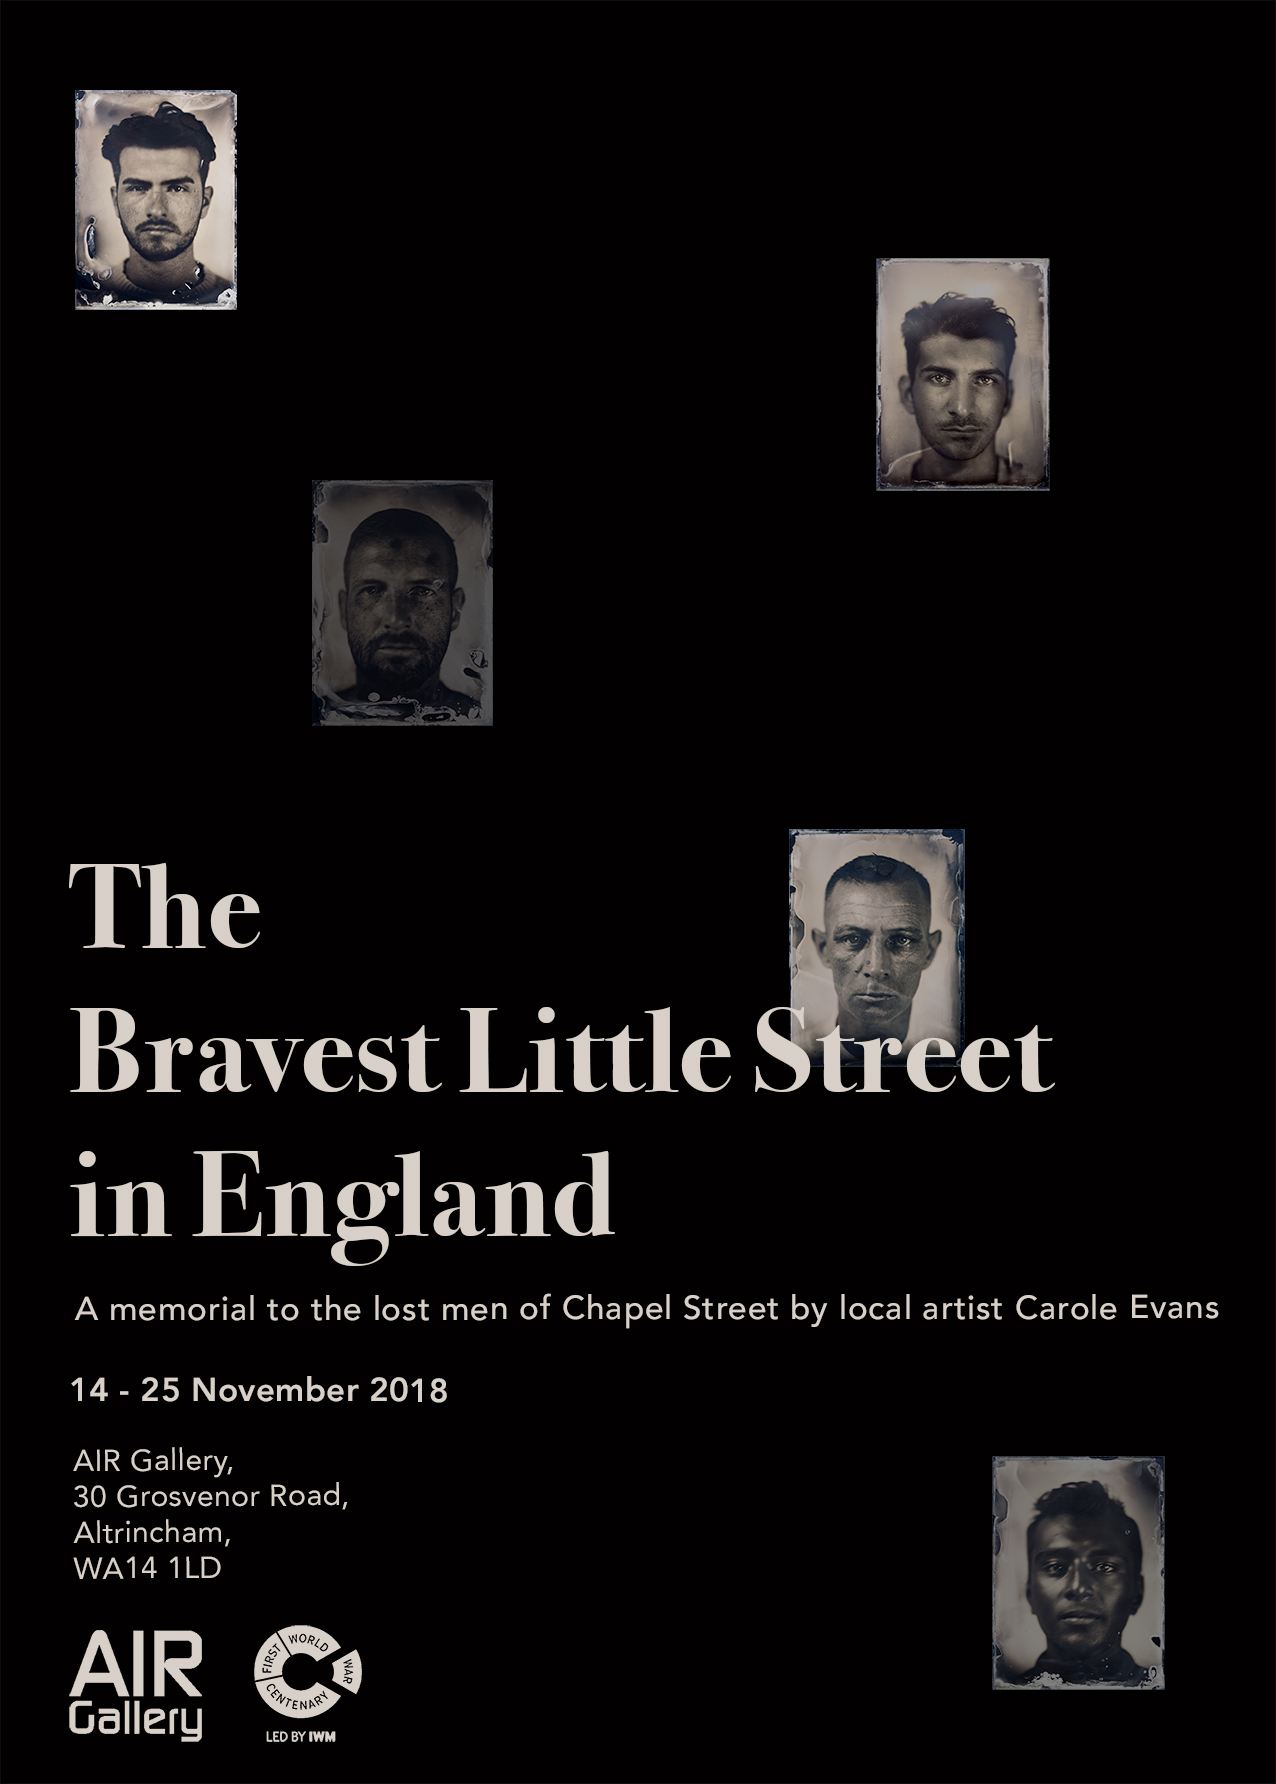 The Bravest Little Street in England